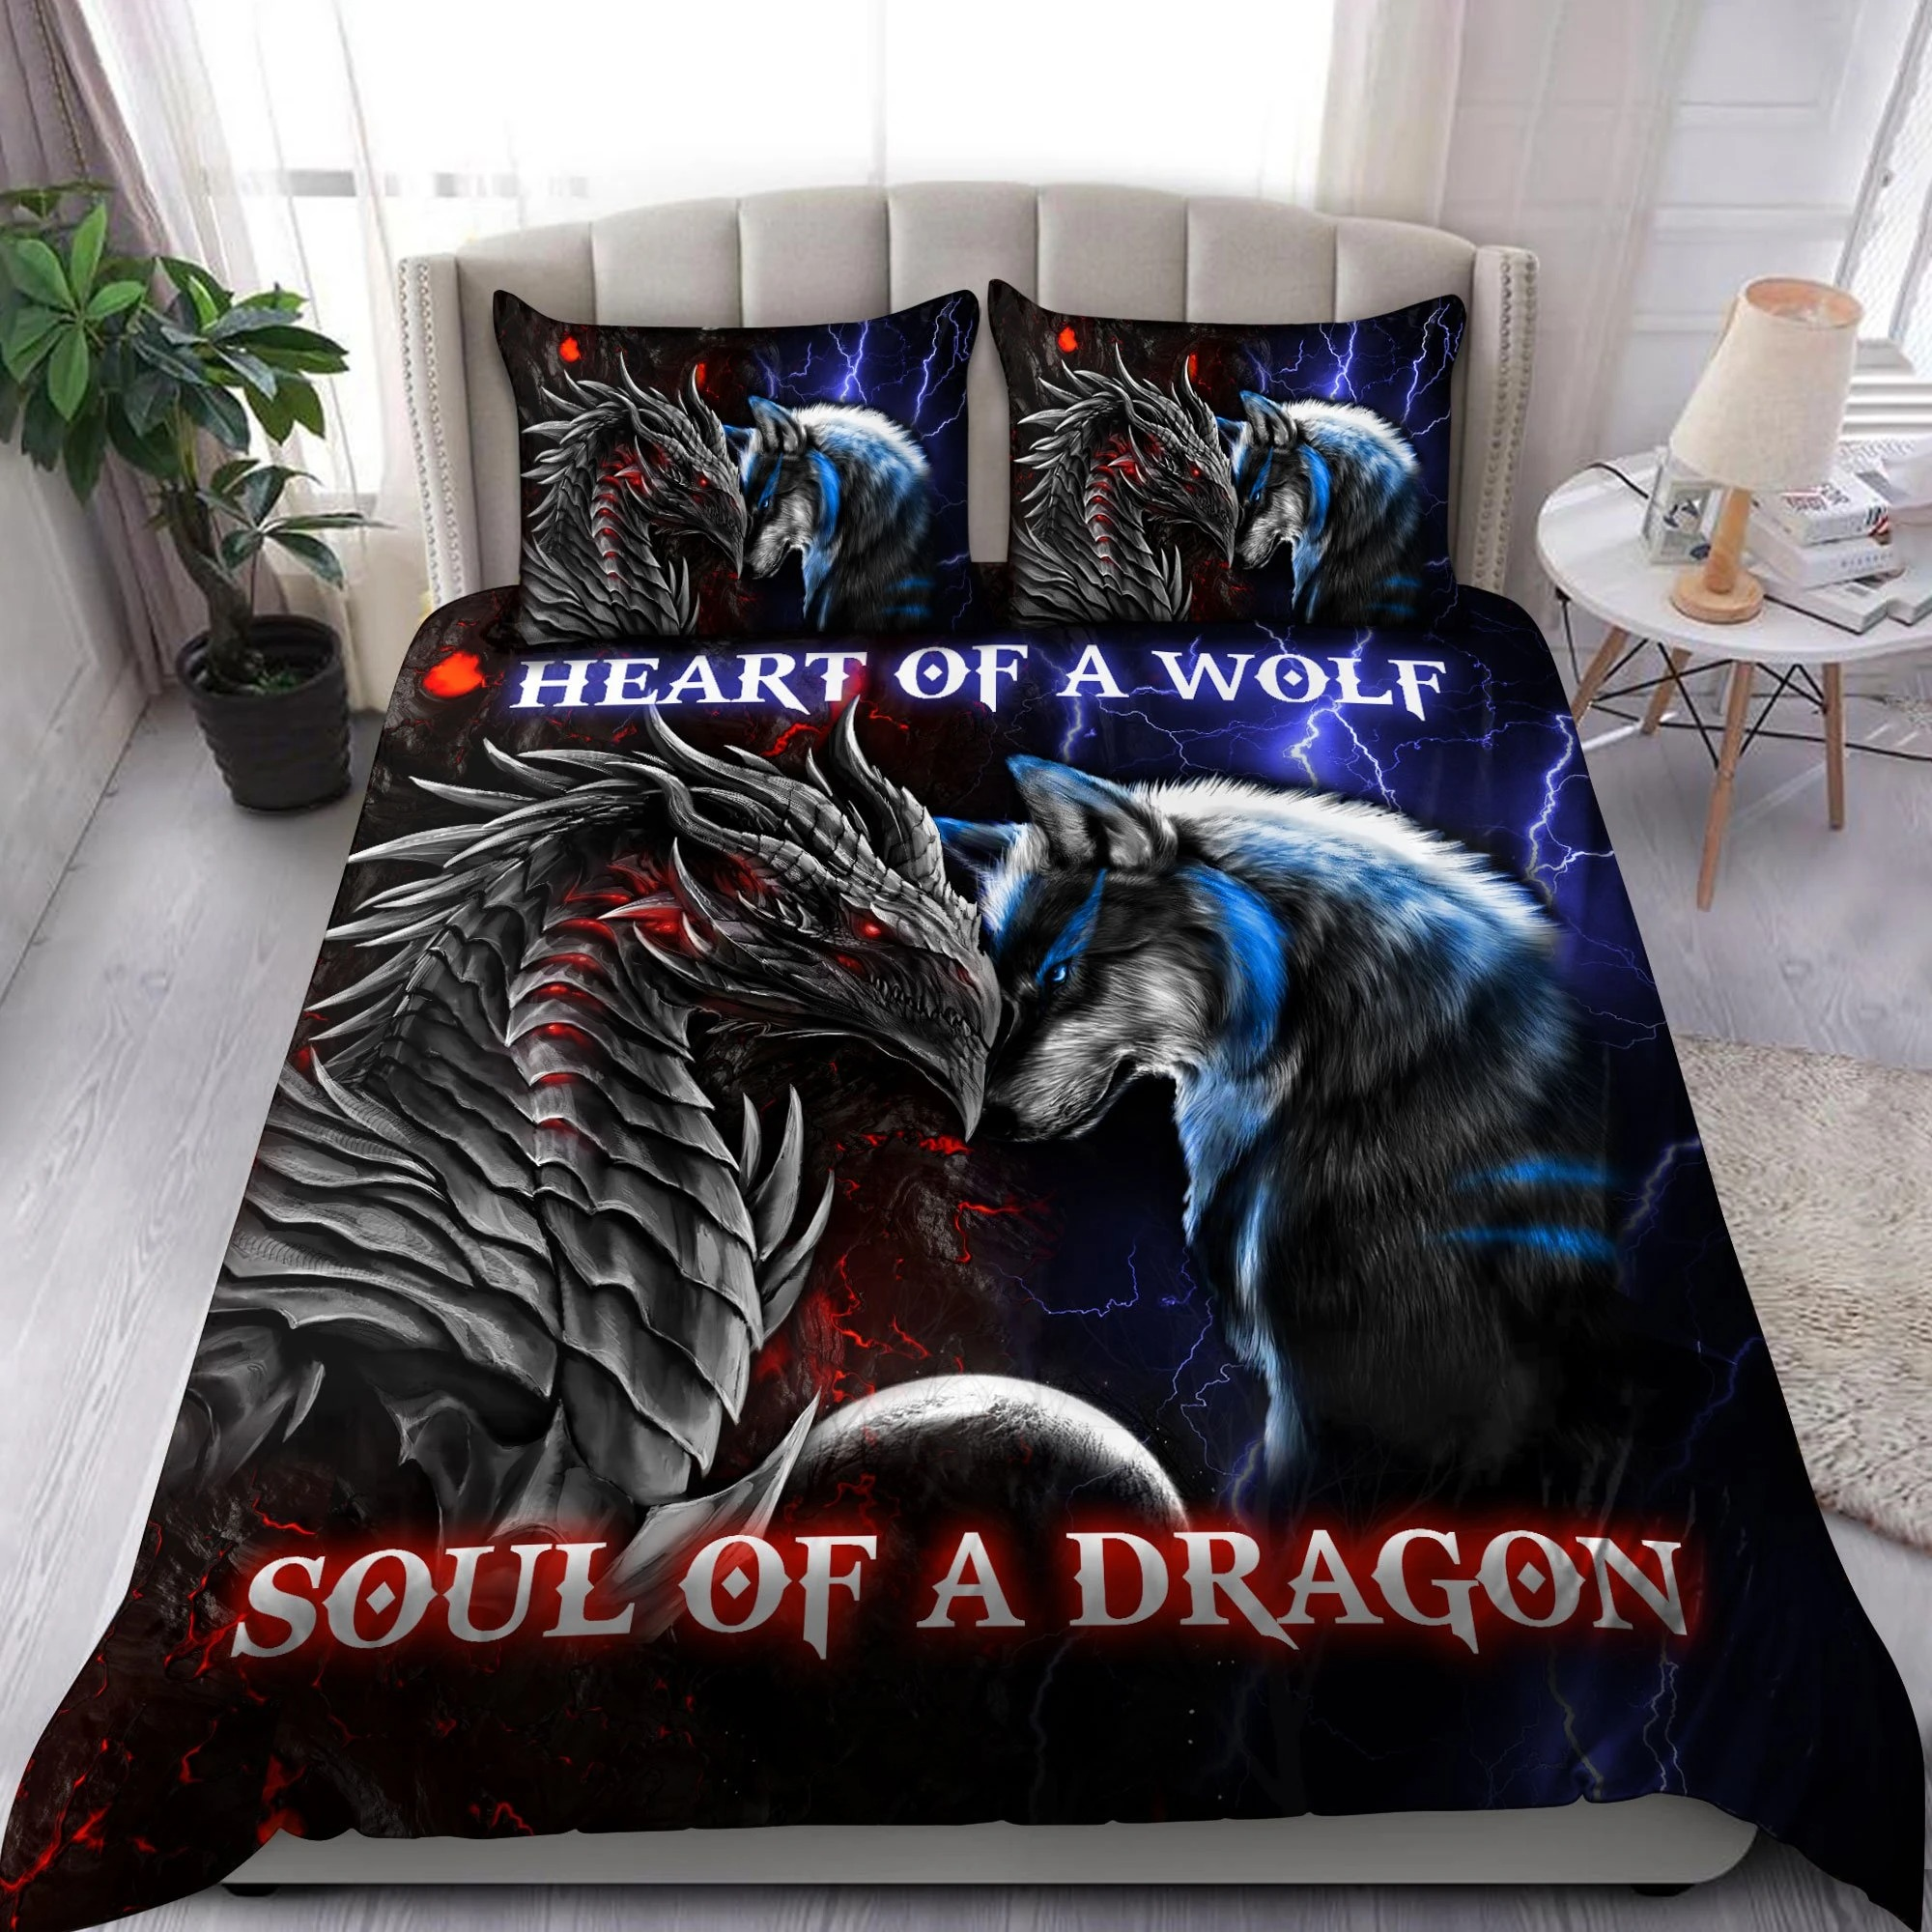 Heart of a wolf soul of a dragon bedding set 9